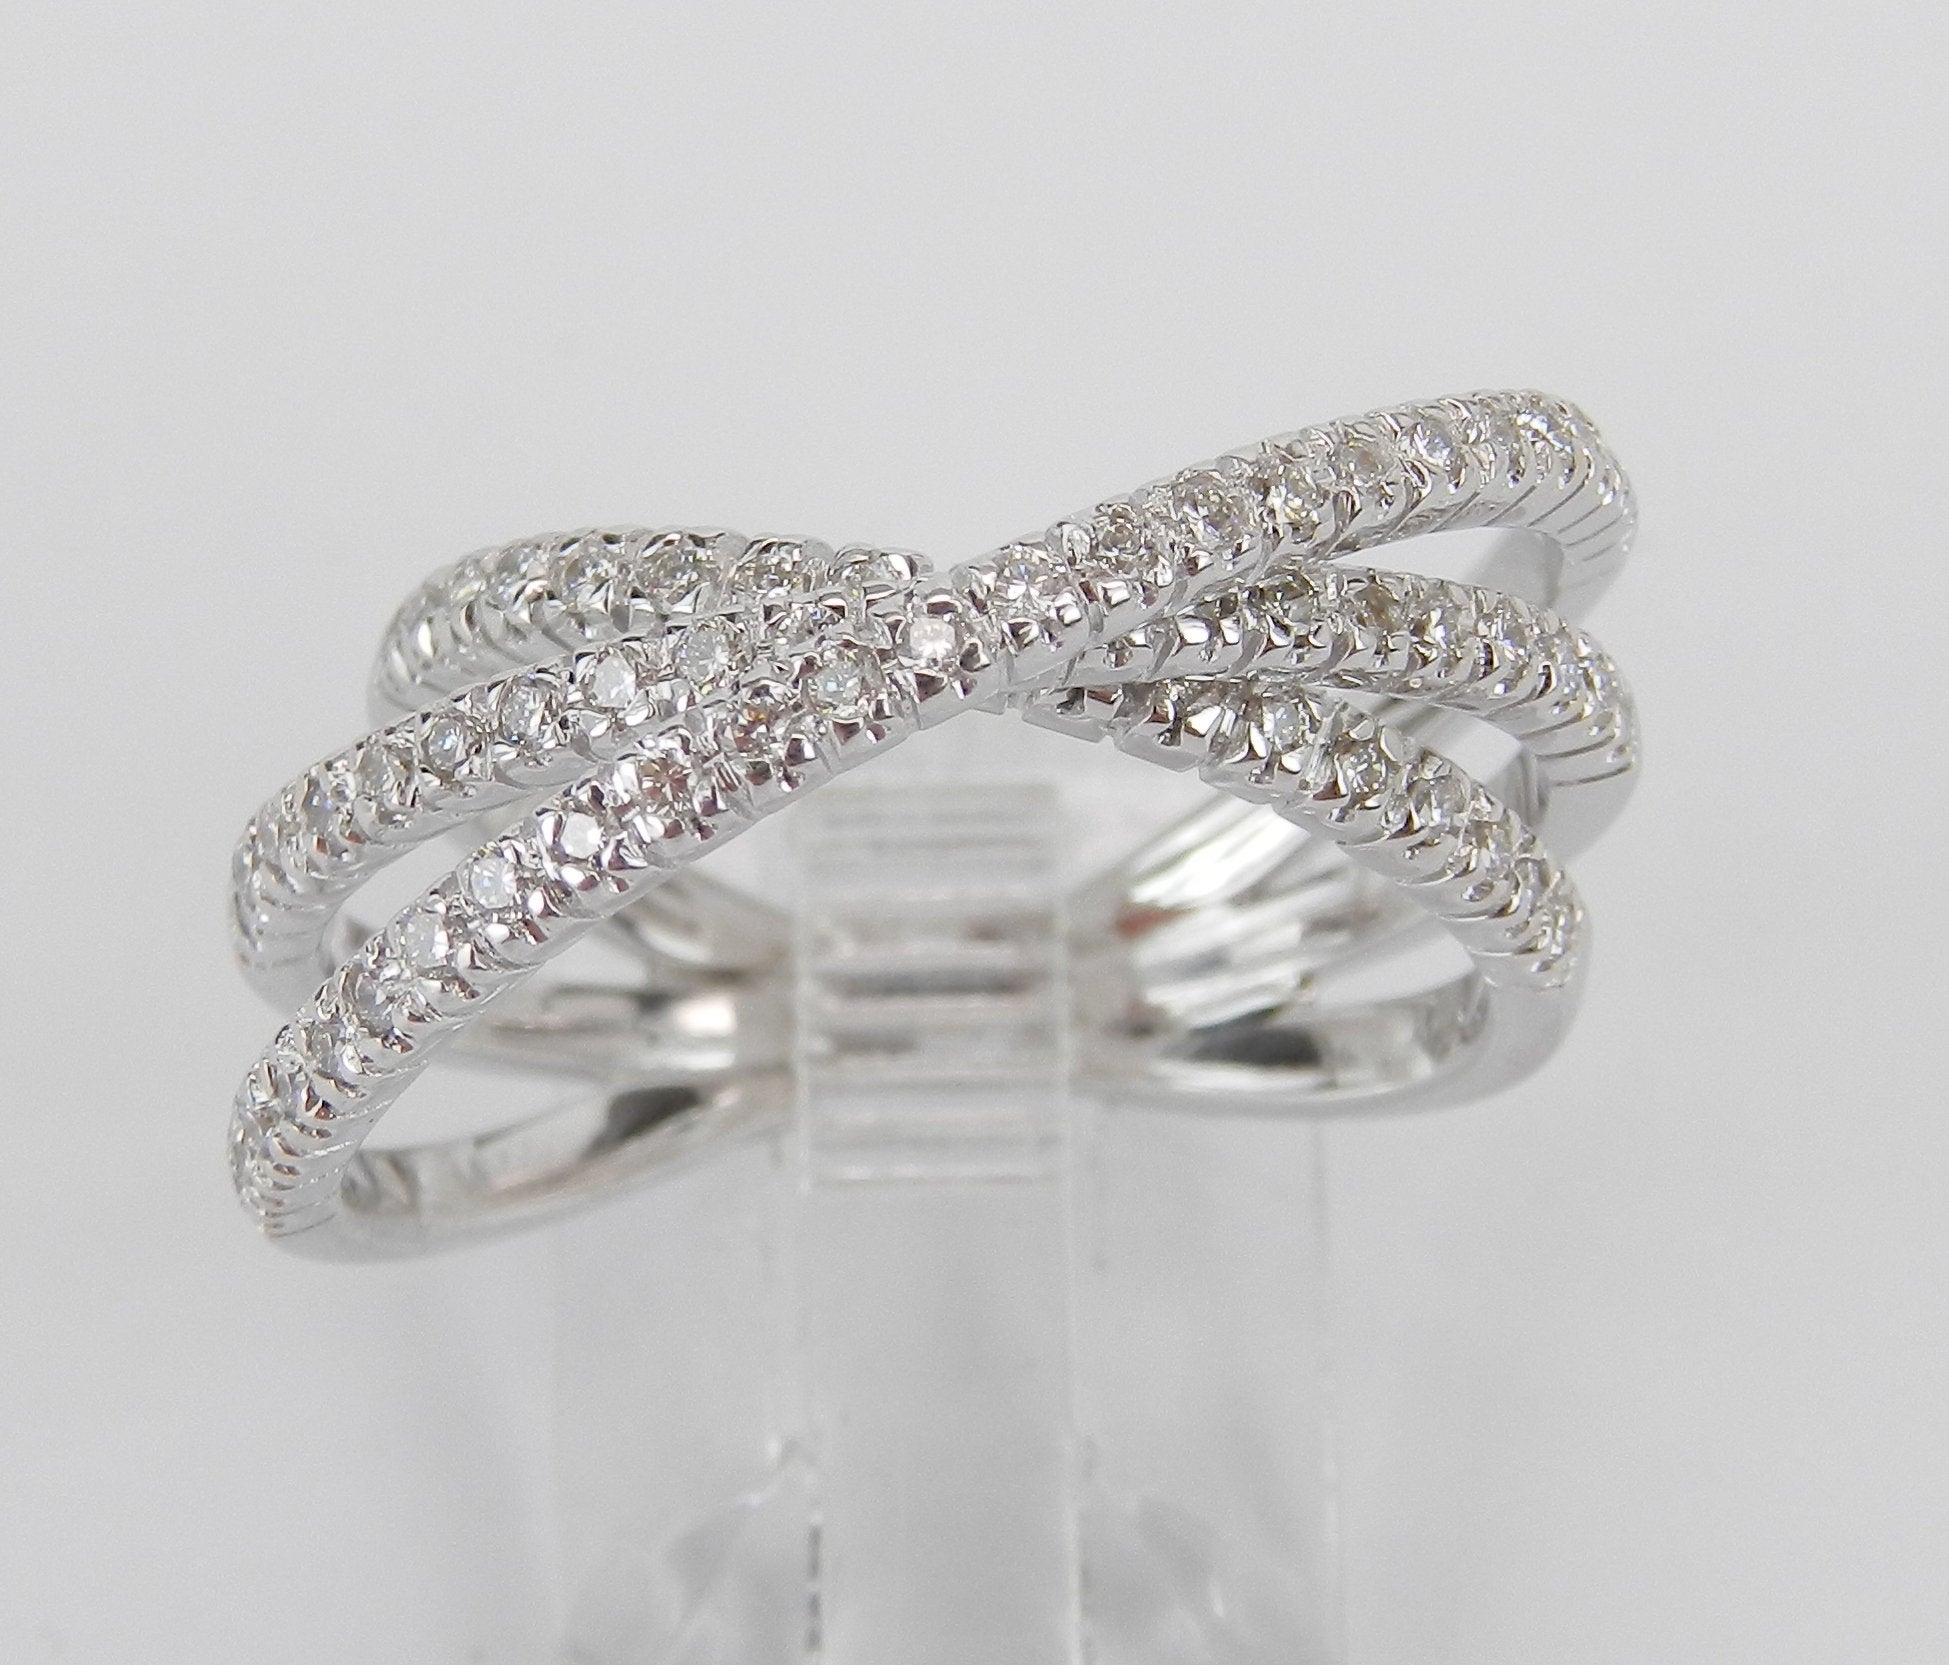 18K White Gold Diamond Crossover Wedding Ring Multi Row Anniversary Band  Size  (View 7 of 25)